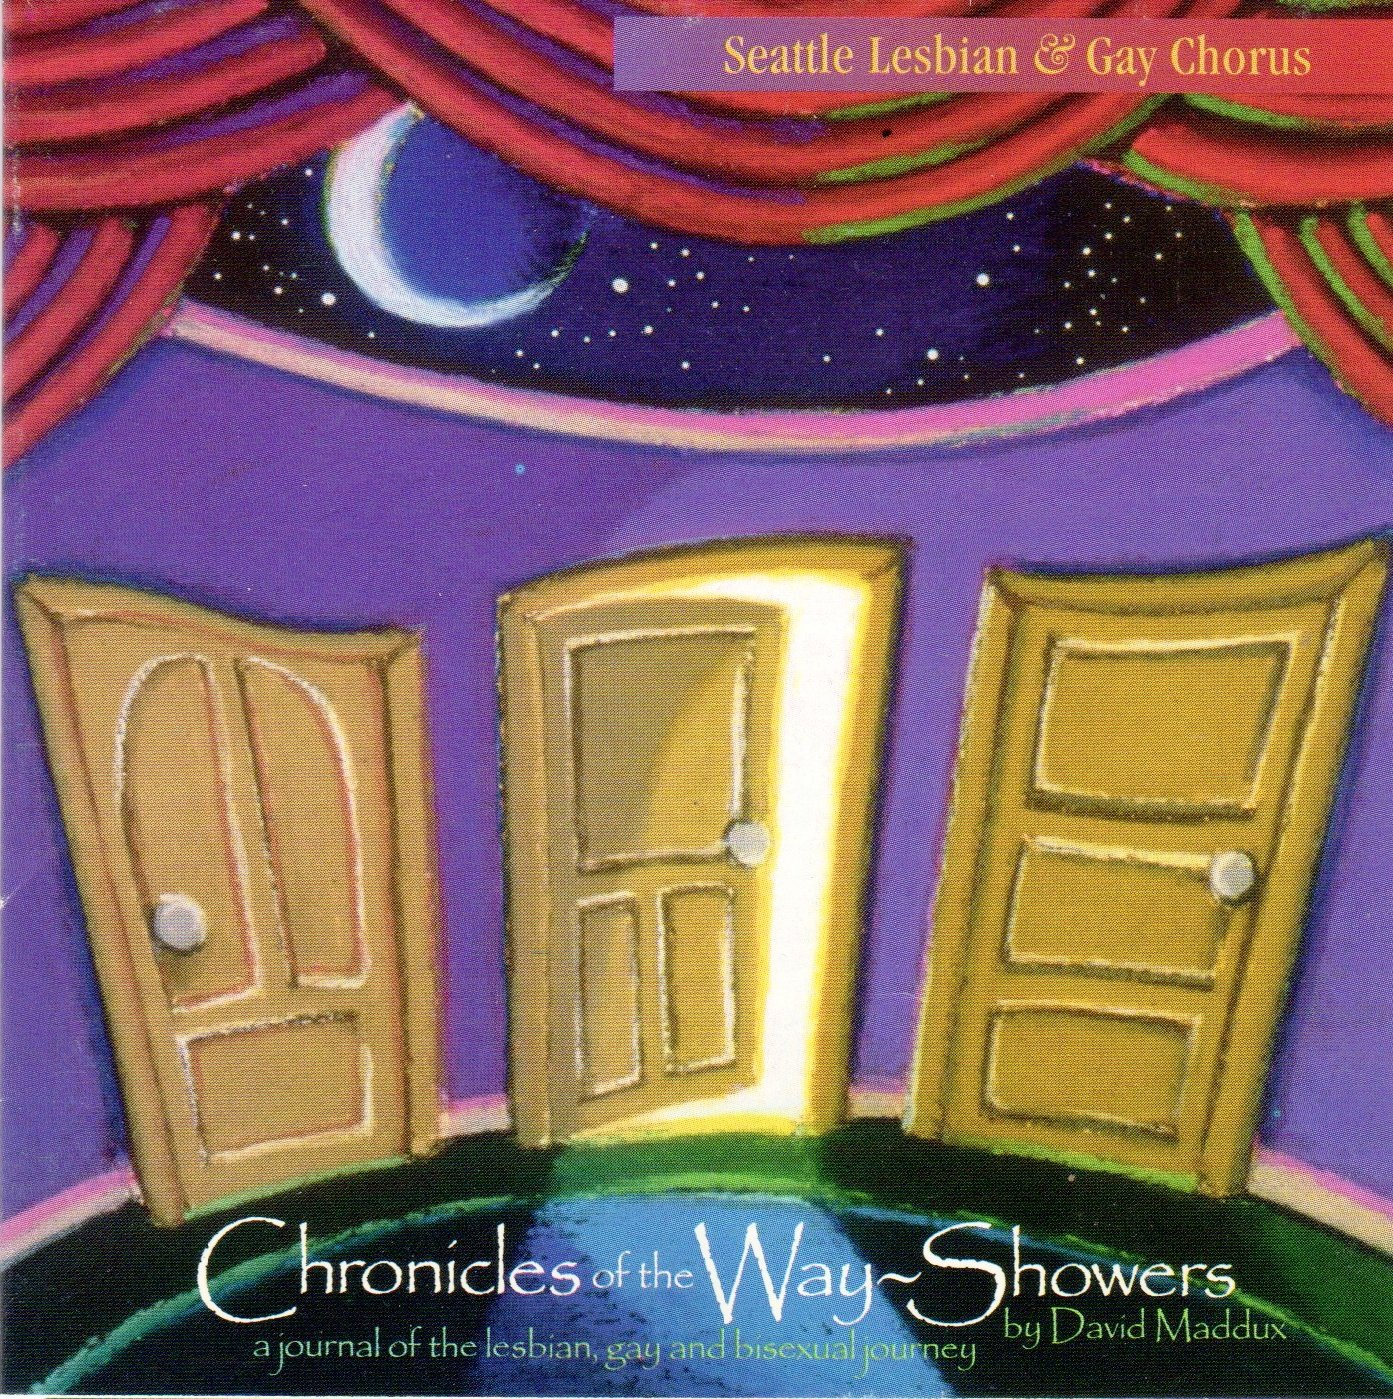 Chronicles of the Way-Showers                                                                                                                                                                                                                                                    <span class=